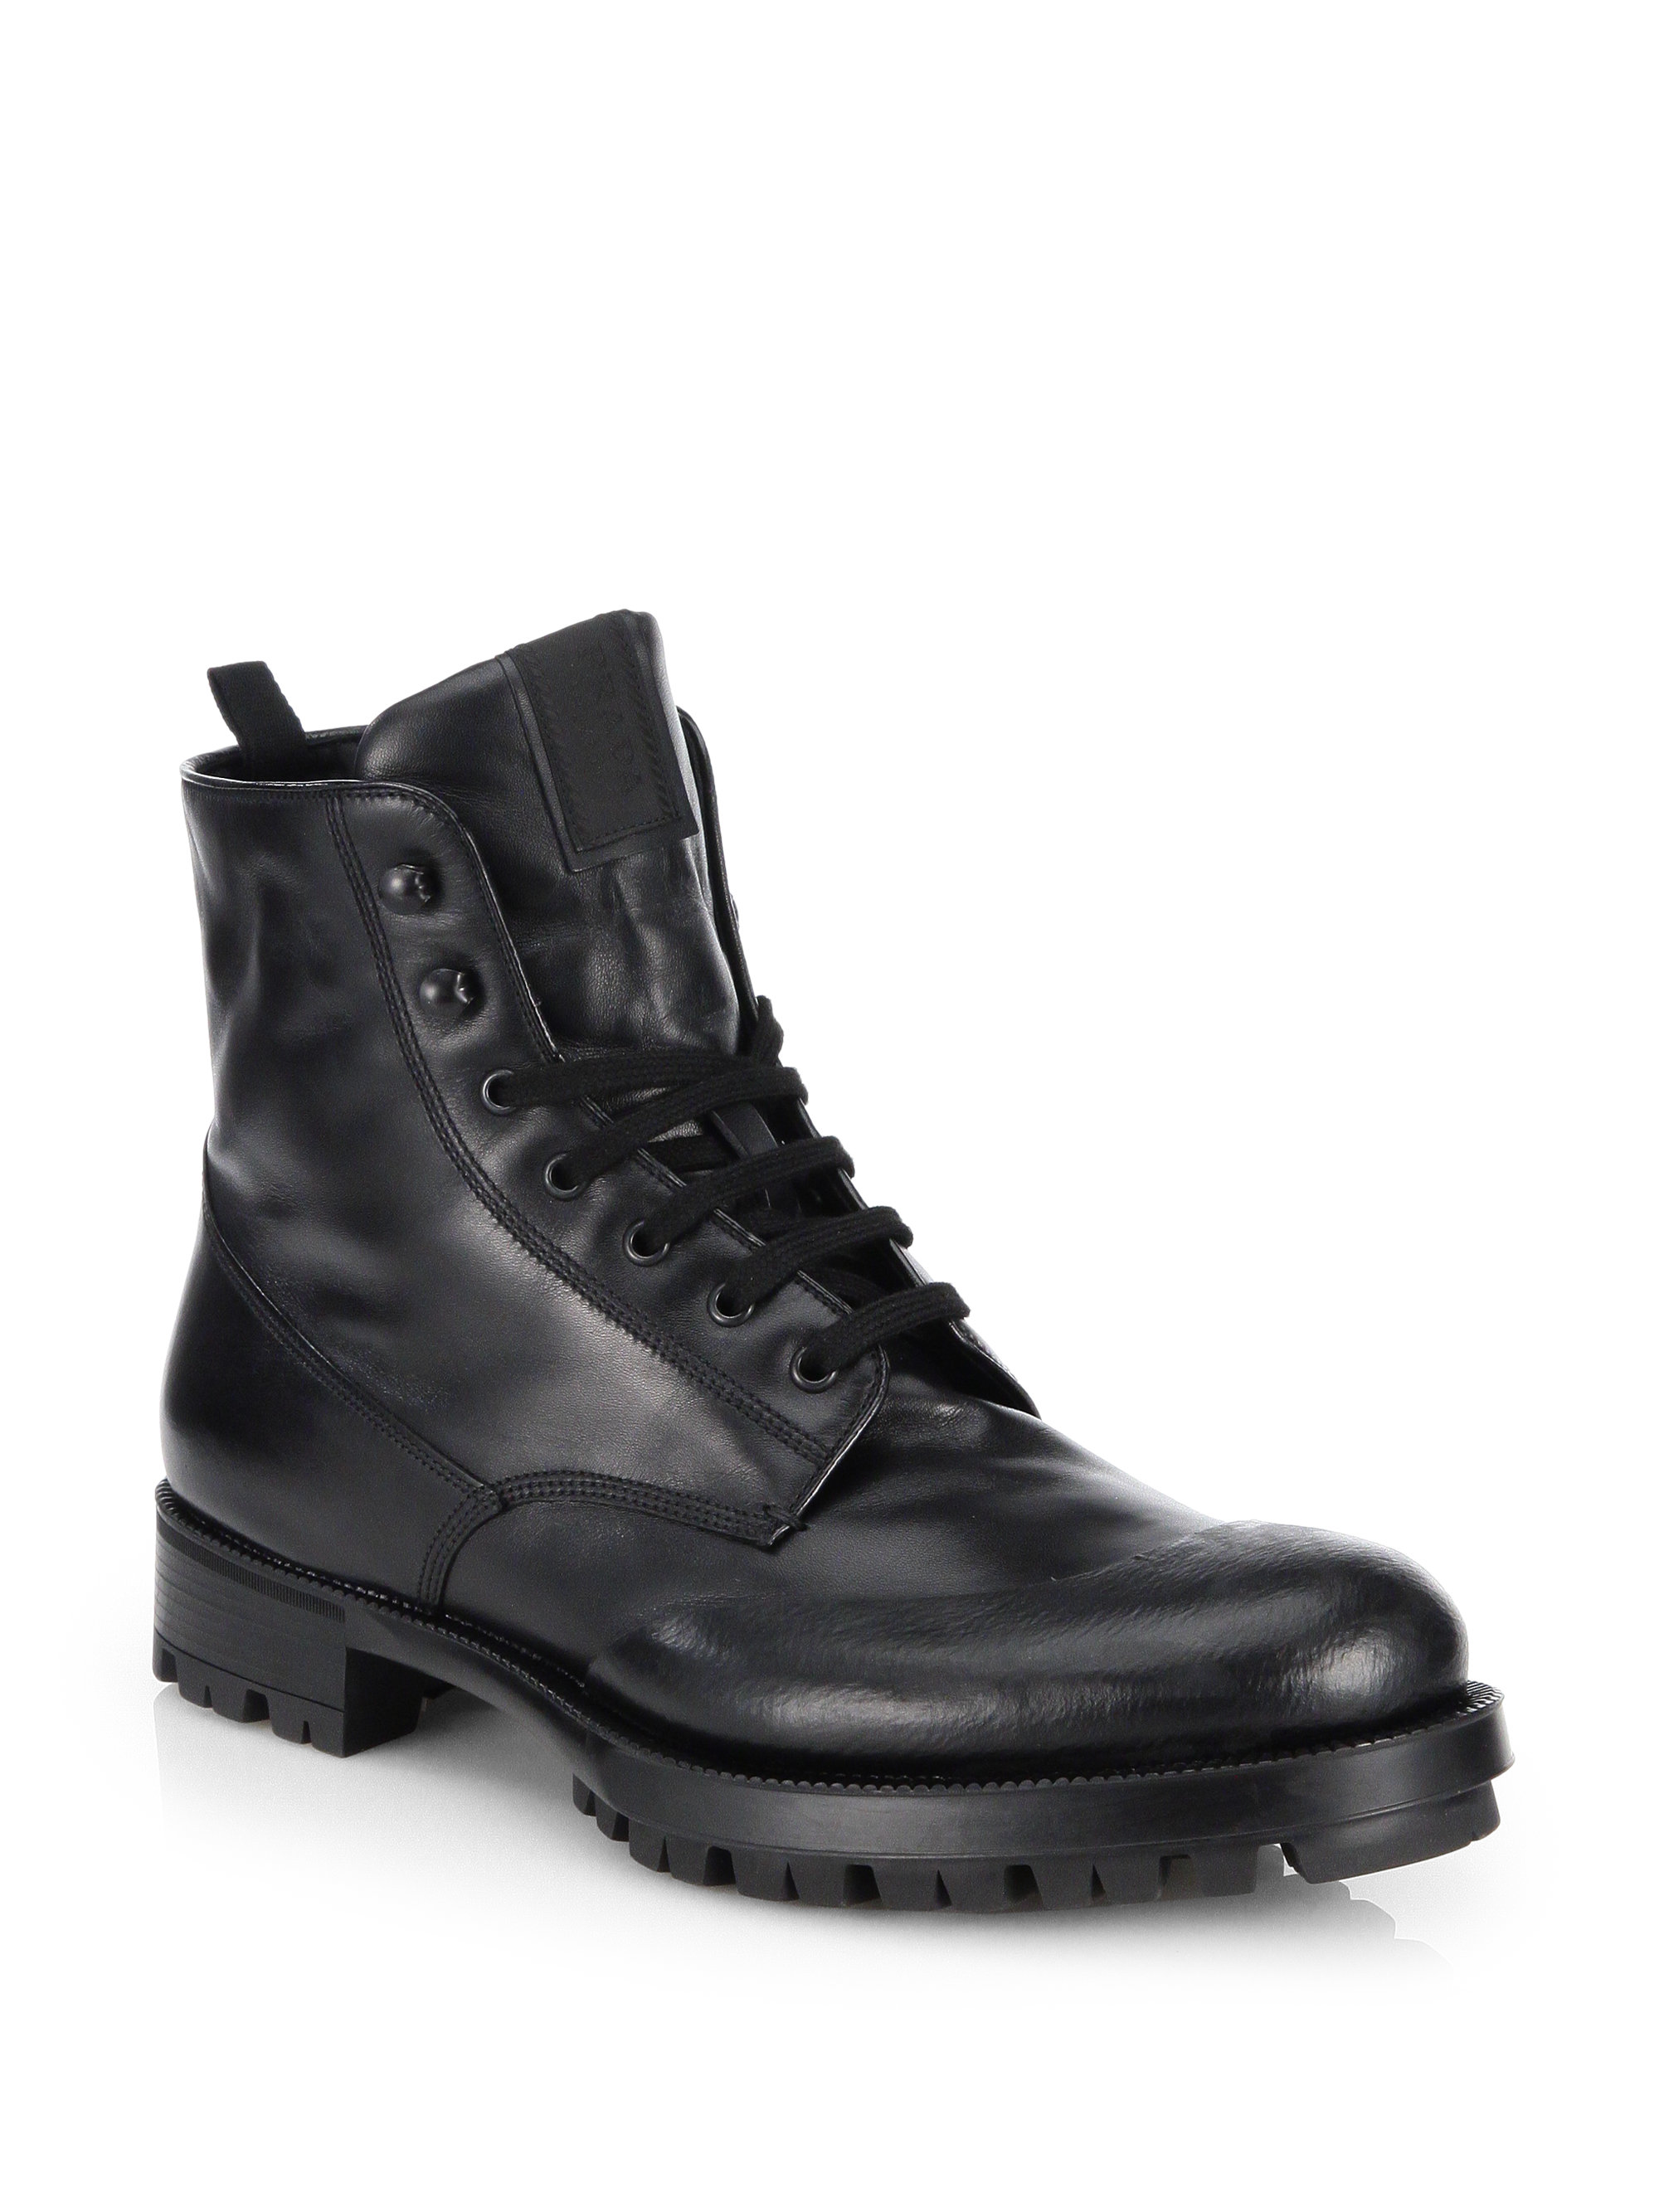 prada laceup leather combat boots in black for lyst